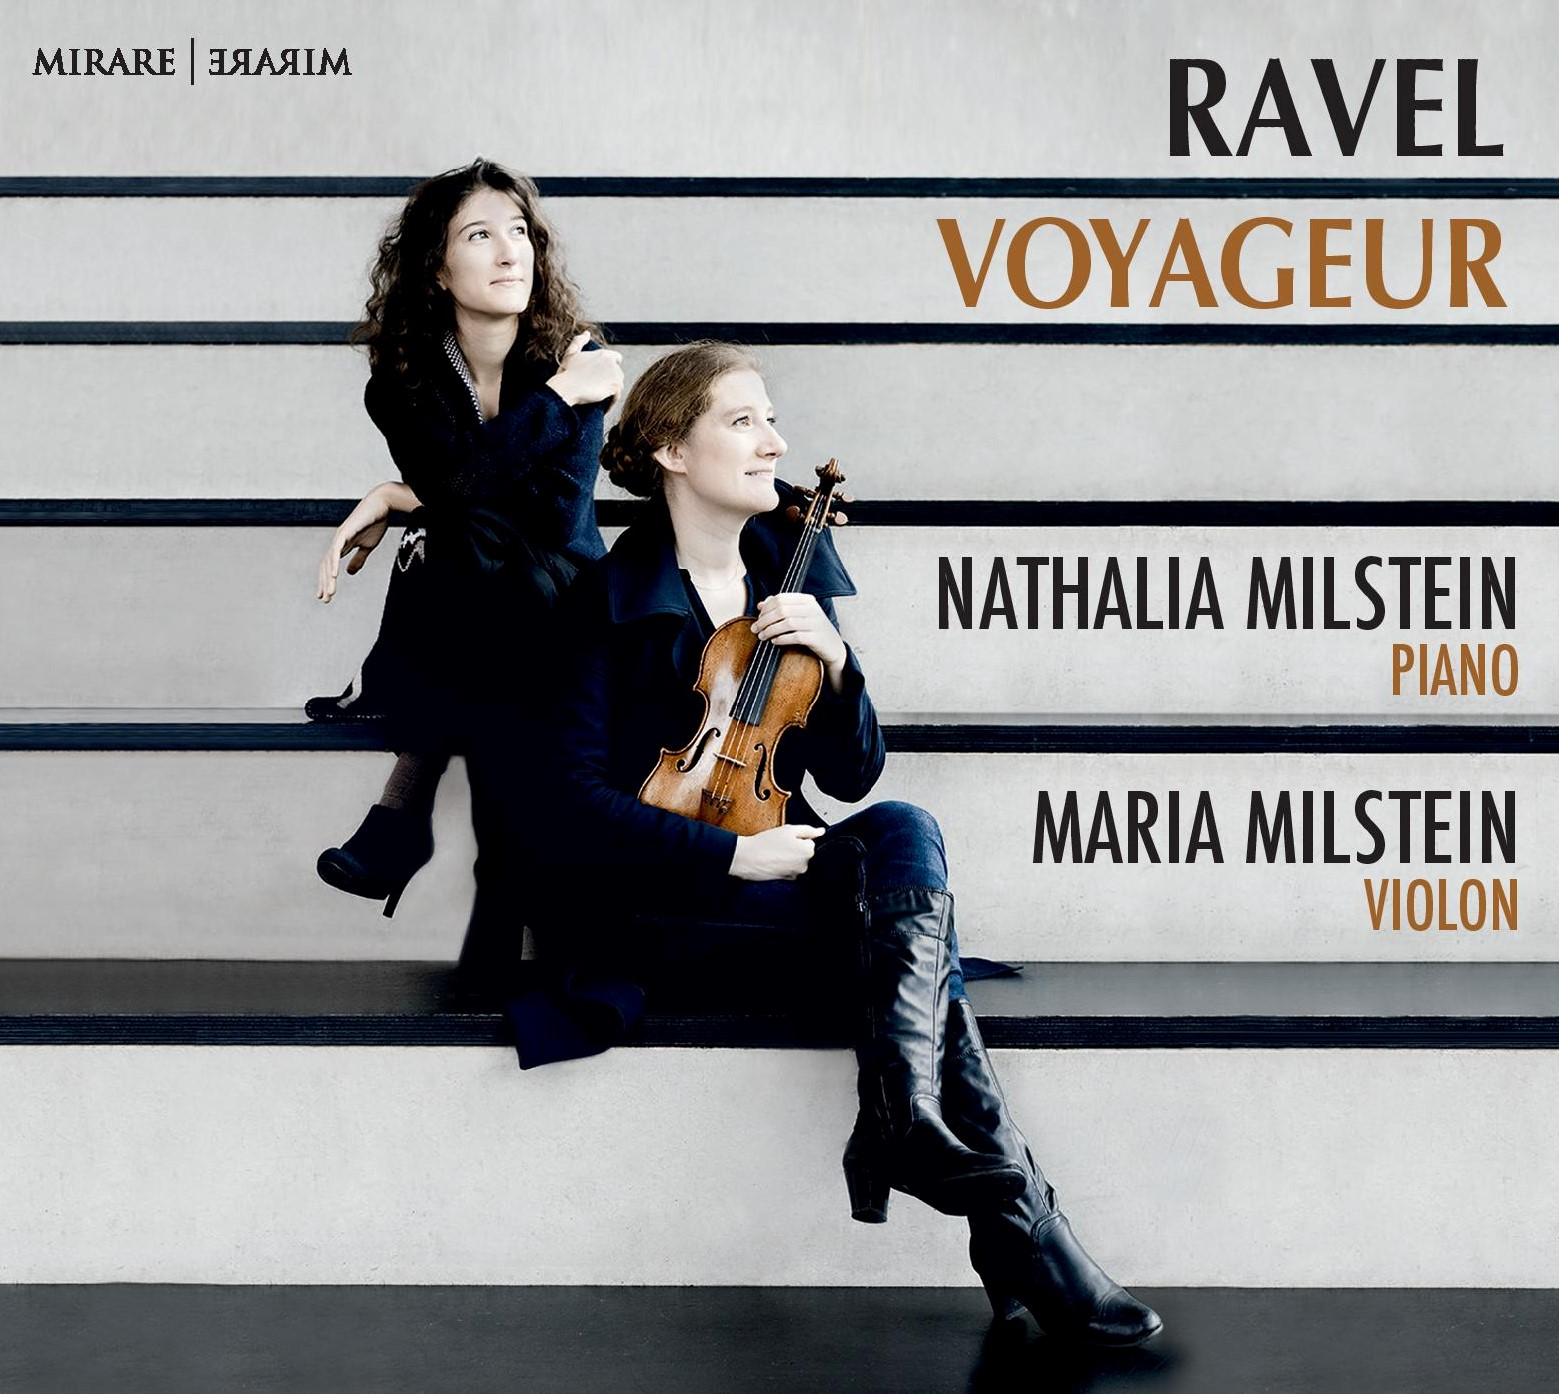 Ravel Voyageur - with Maria Milstein, violinAll works of Ravel for violin and pianoRelease in August 2019+ Trailer +                         + Extract +